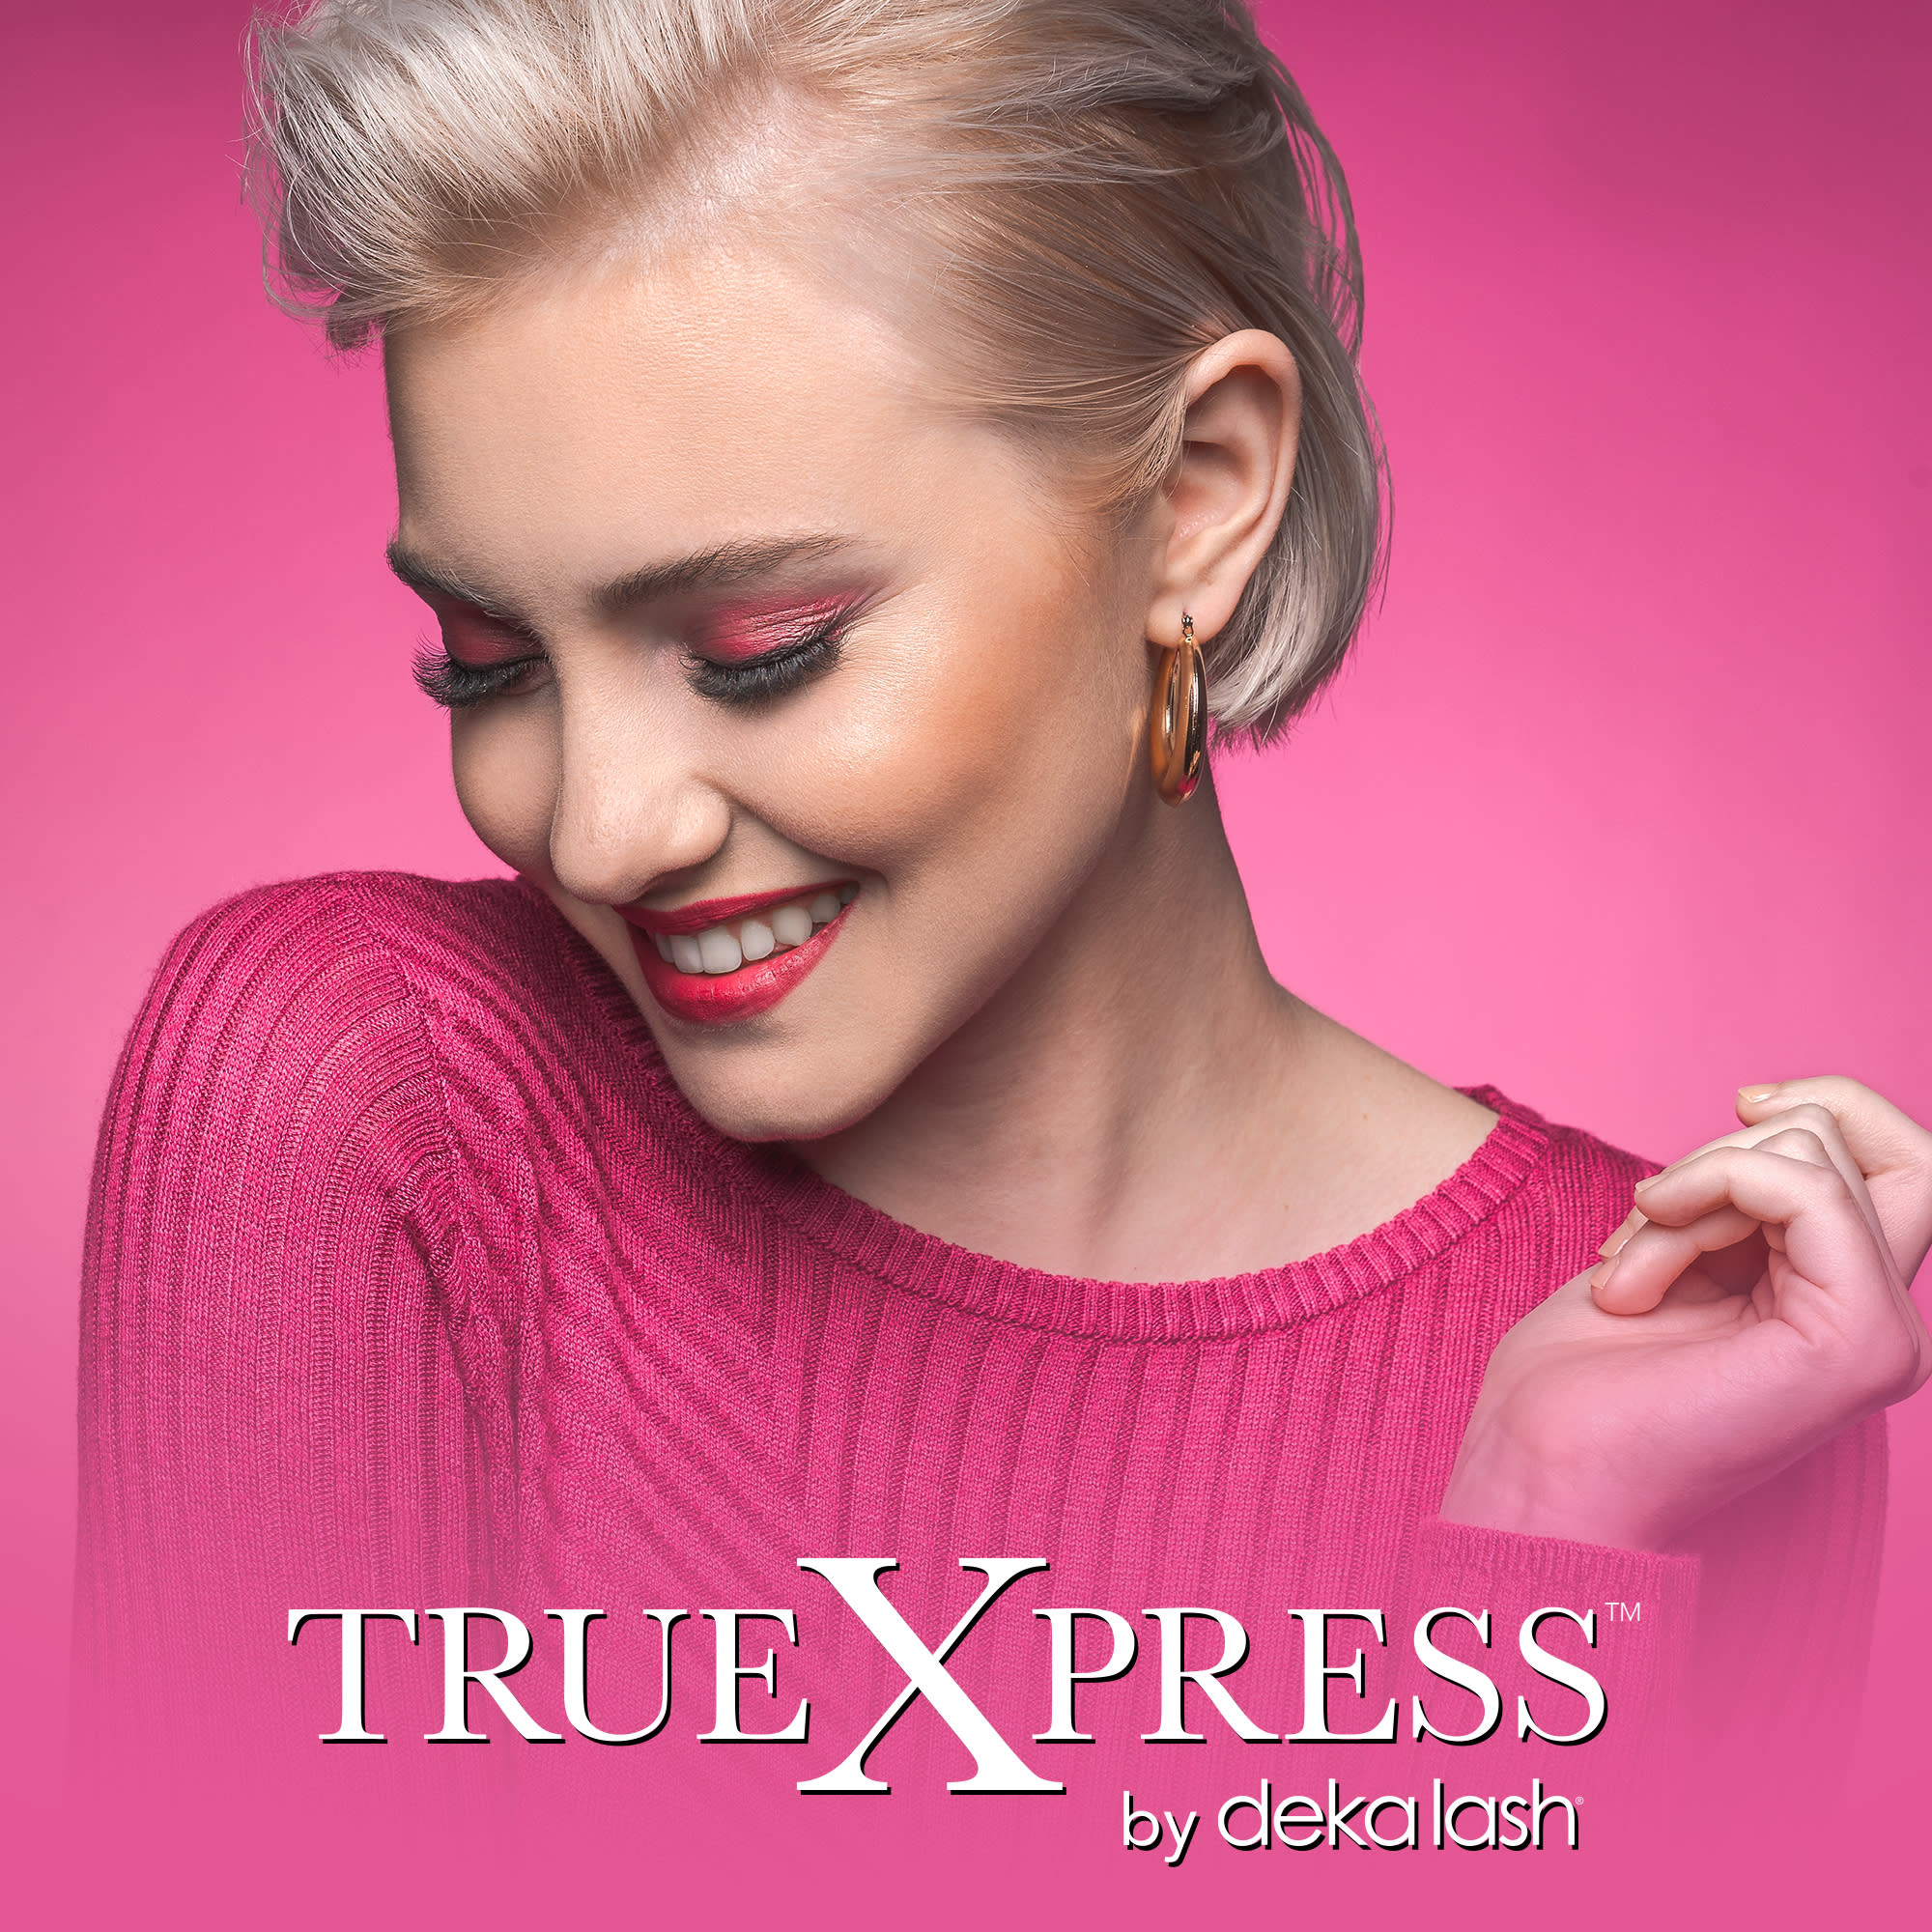 TrueXpress by deka lash